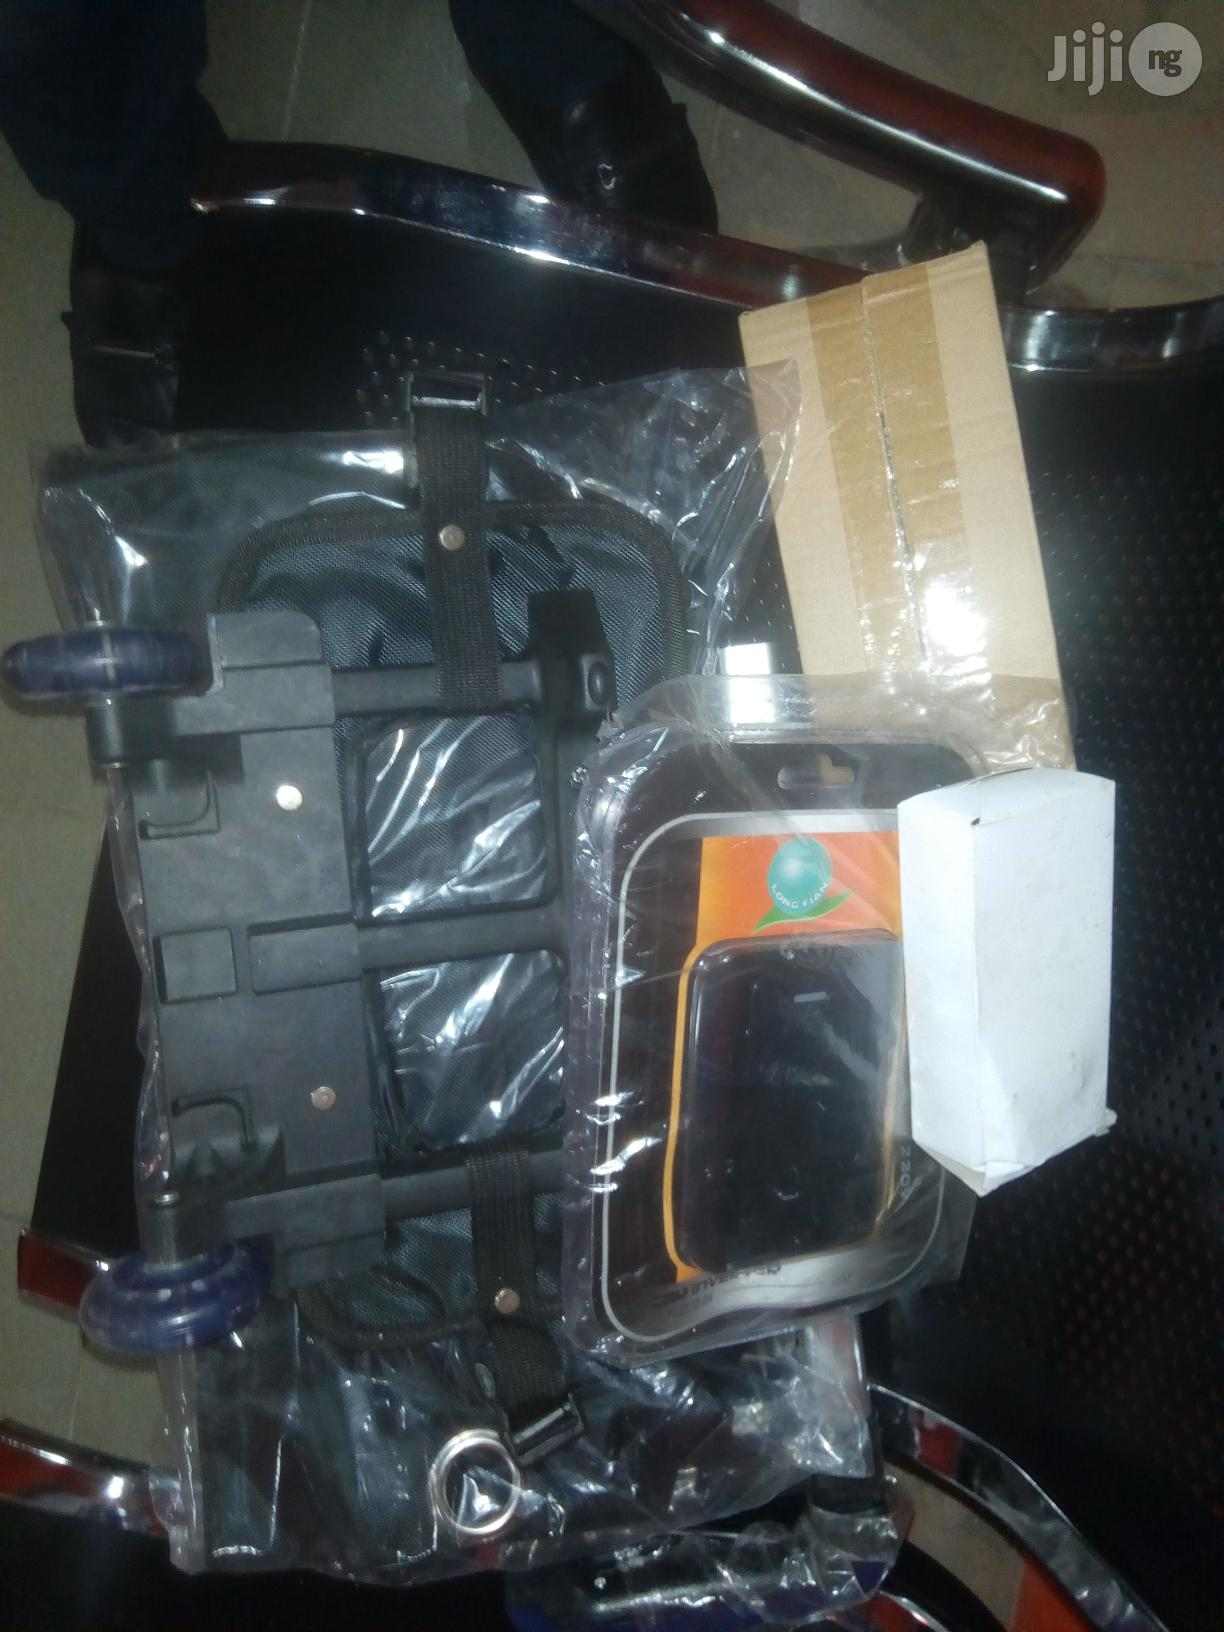 Portable Rechargeable Oxygen Concentrator | Medical Supplies & Equipment for sale in Amuwo-Odofin, Lagos State, Nigeria